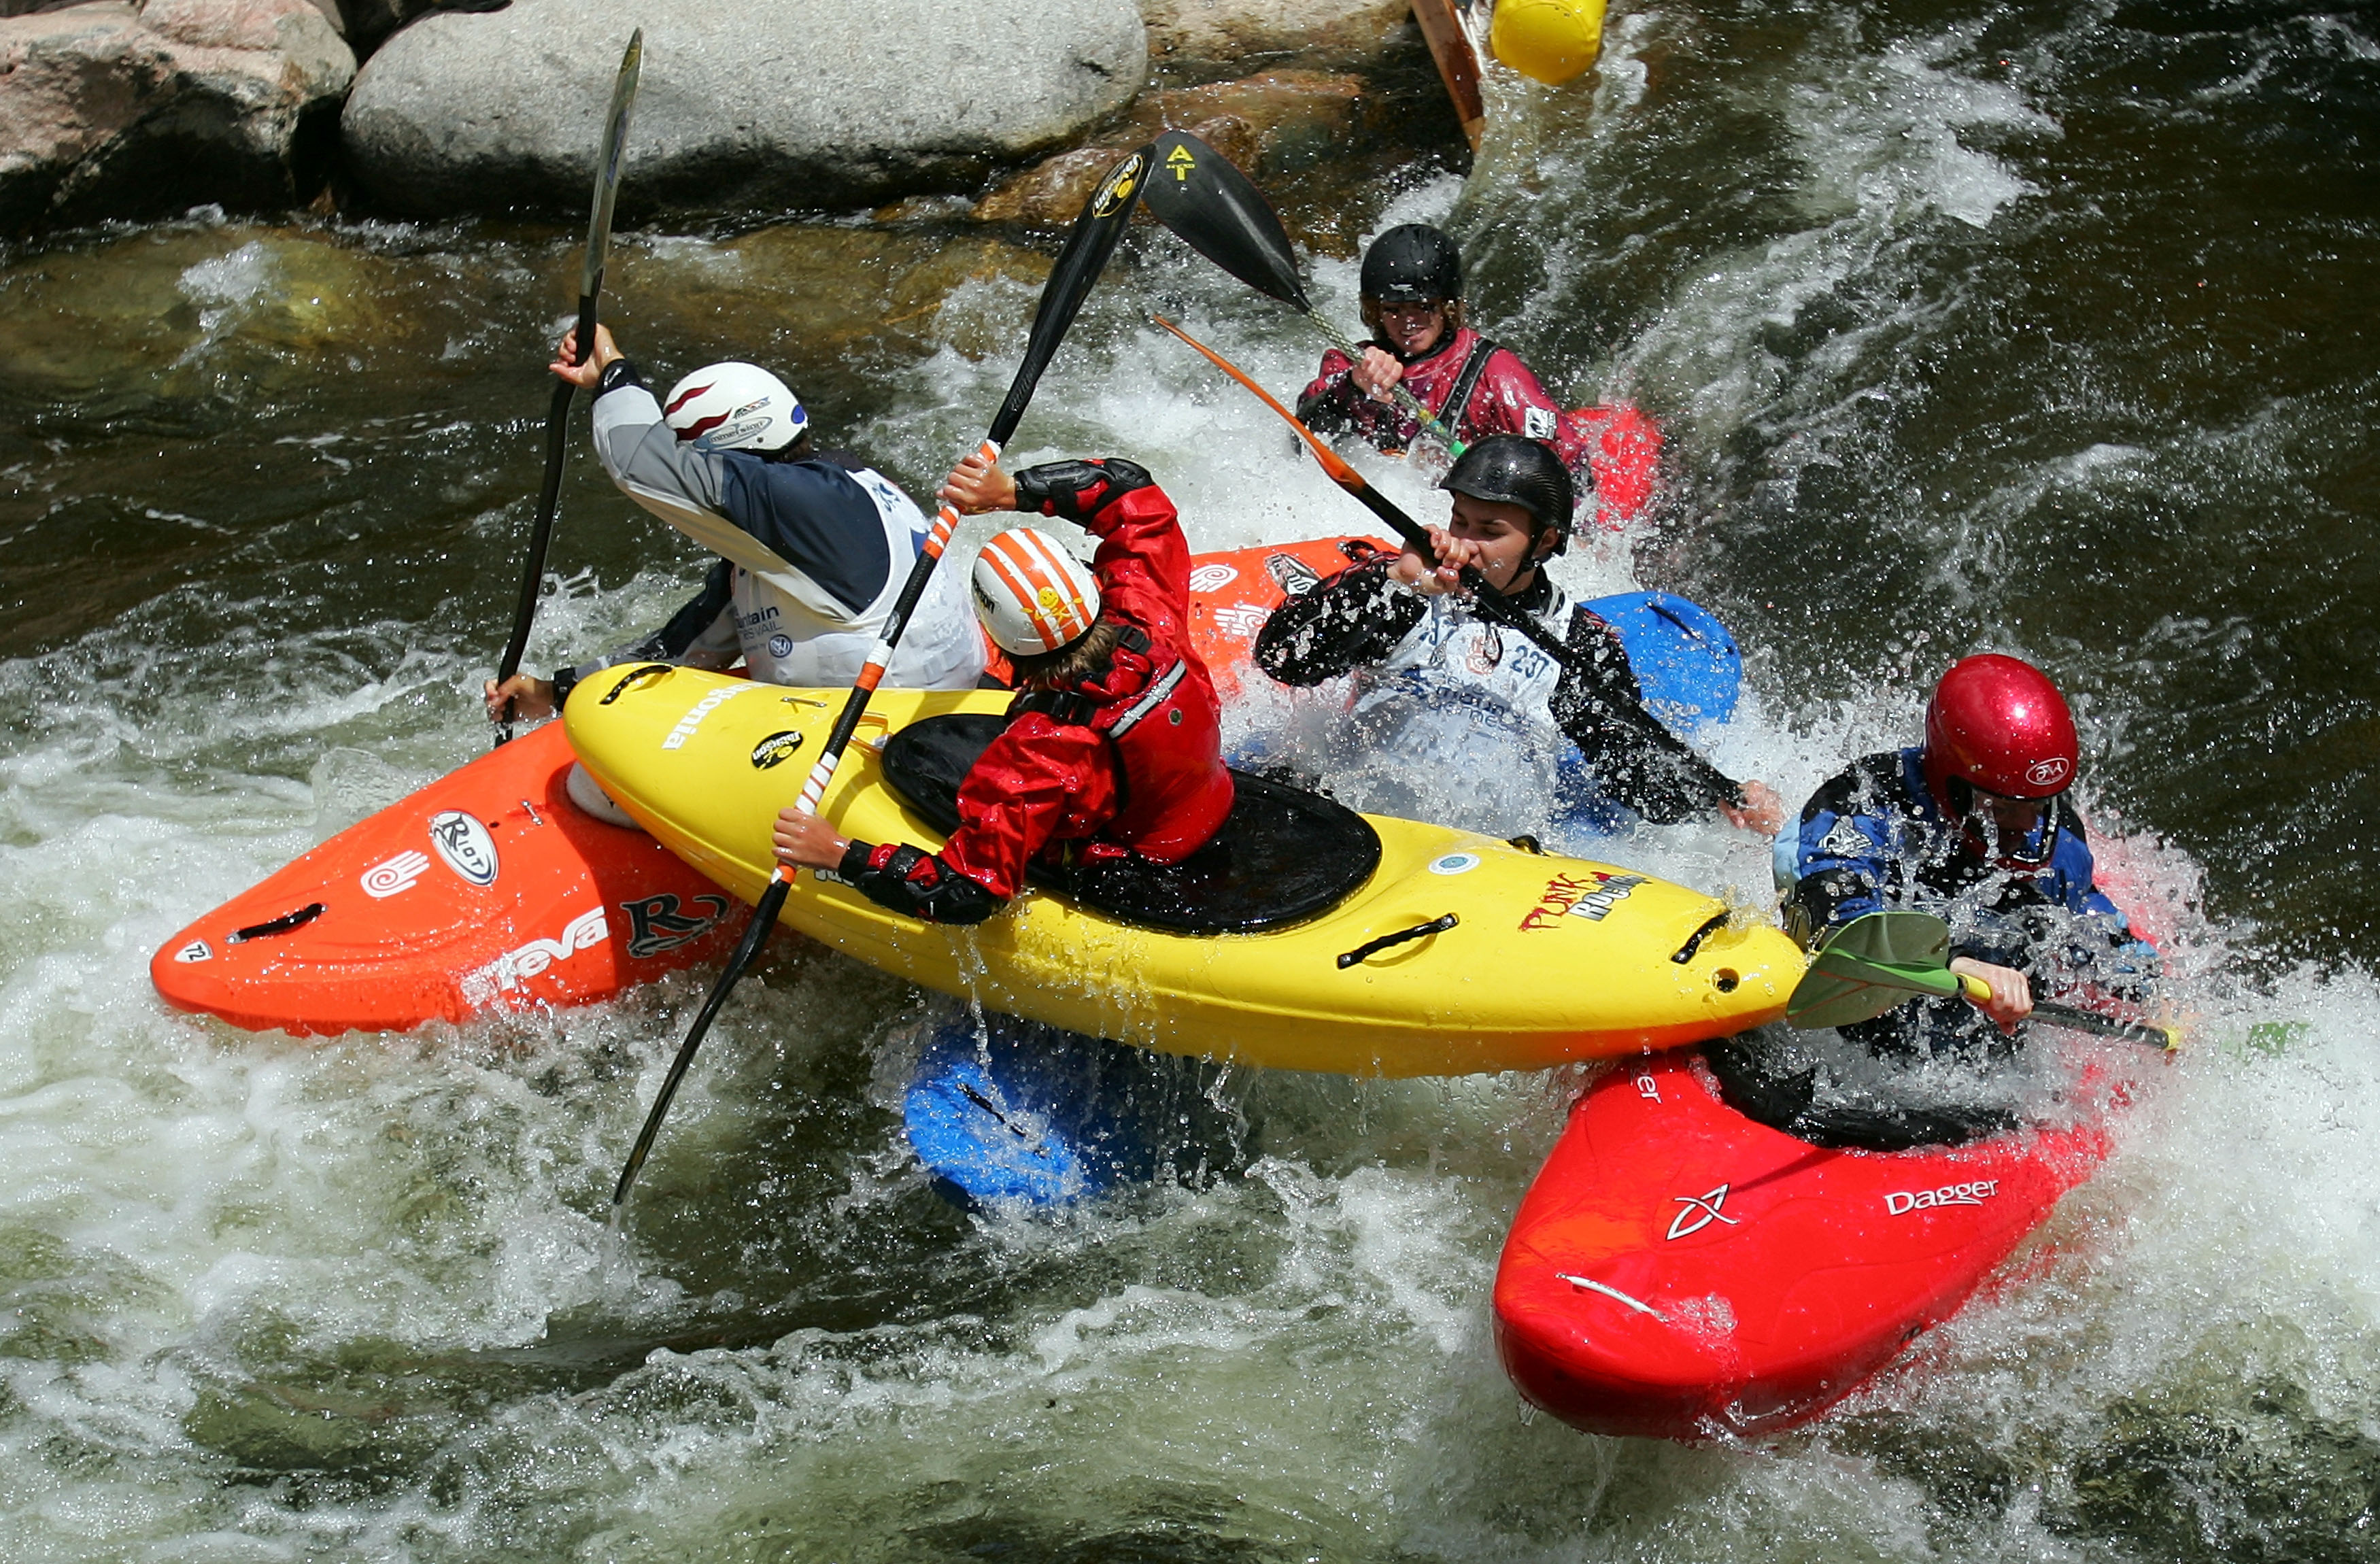 VAIL, CO - JUNE 3:  Kayakers collide during the 8 Ball Kayak Sprint during the 8 Ball Kayak Sprint during the Teva Mountain Games June 3, 2007 Competitors, in white bibs, sprint head to head downstream as the 8 Balls impede their progress enroute to the finish. Featured 8 Ball Dane Jackson, age 13, of Walling, Tennessee is hoisted out of the water by charging Kayakers during the semifinals.  (Photo by Doug Pensinger/Getty Images)